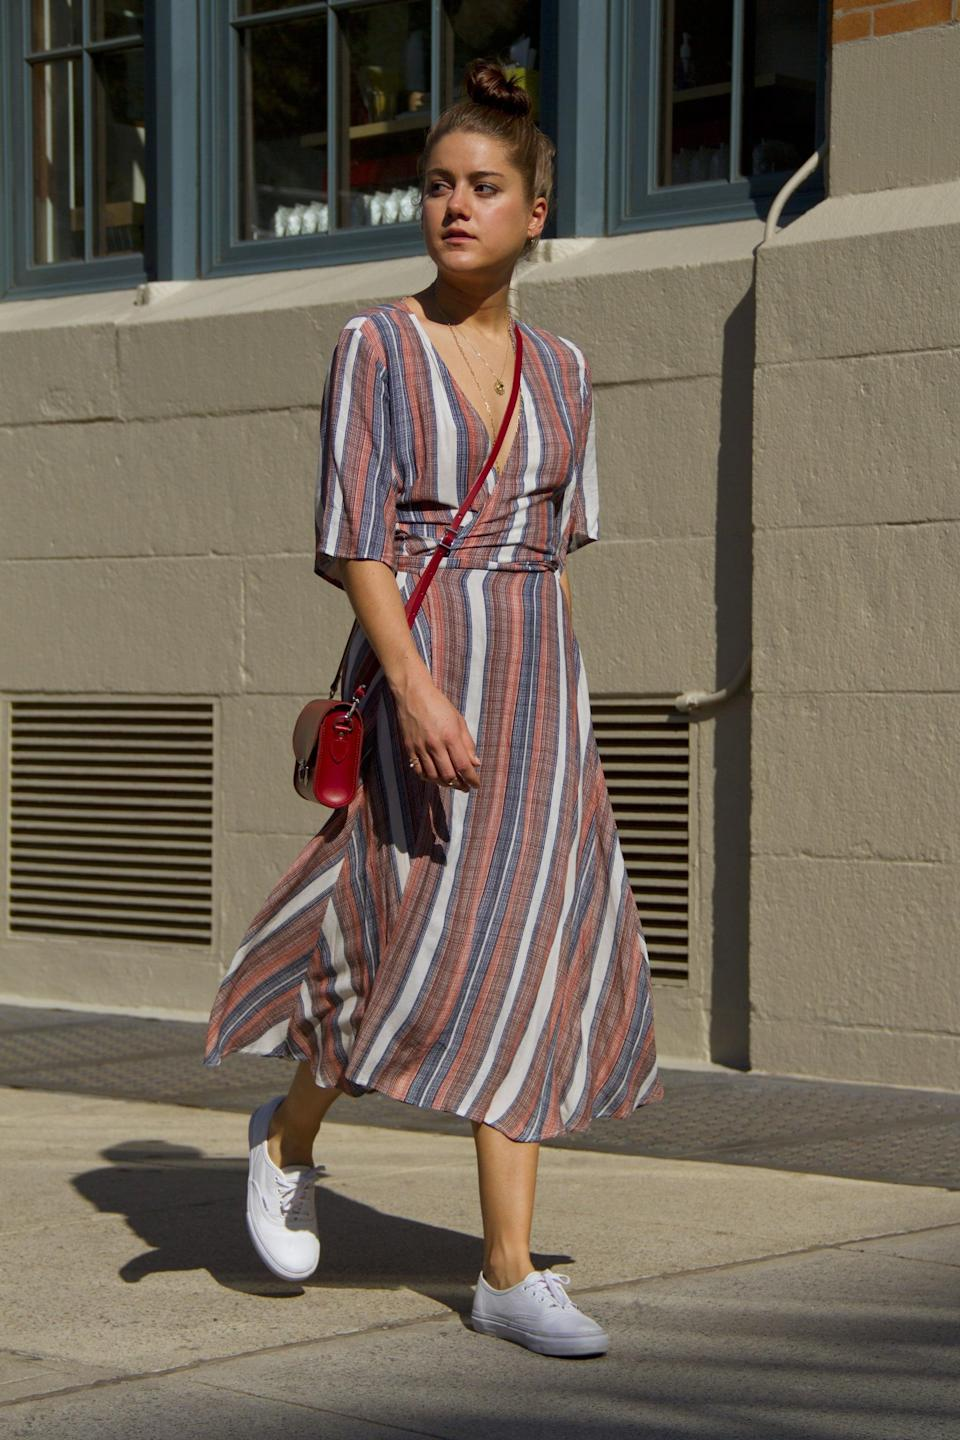 <p>An easy dress paired with everyday sneakers makes for an irresistible combination.</p>